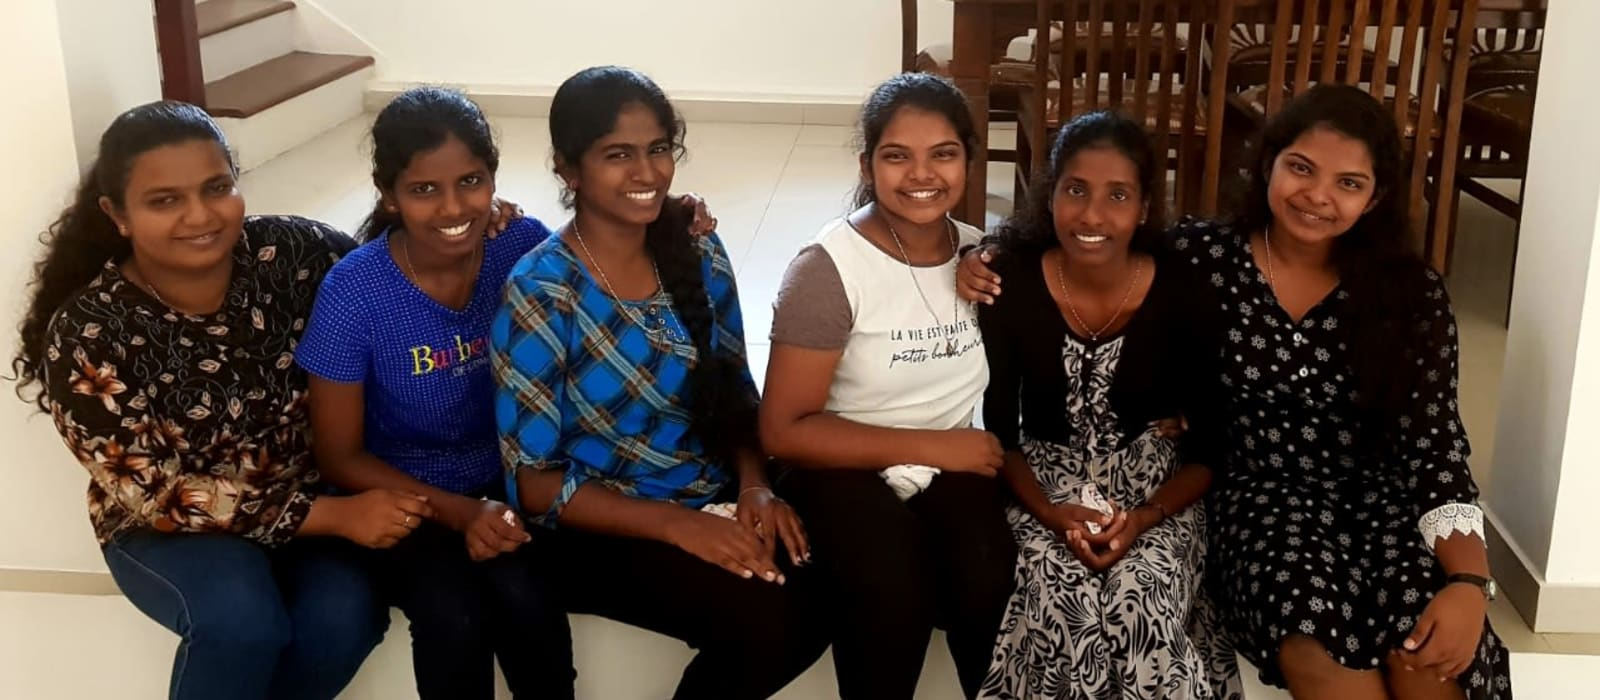 Ethul Kotte girls at home